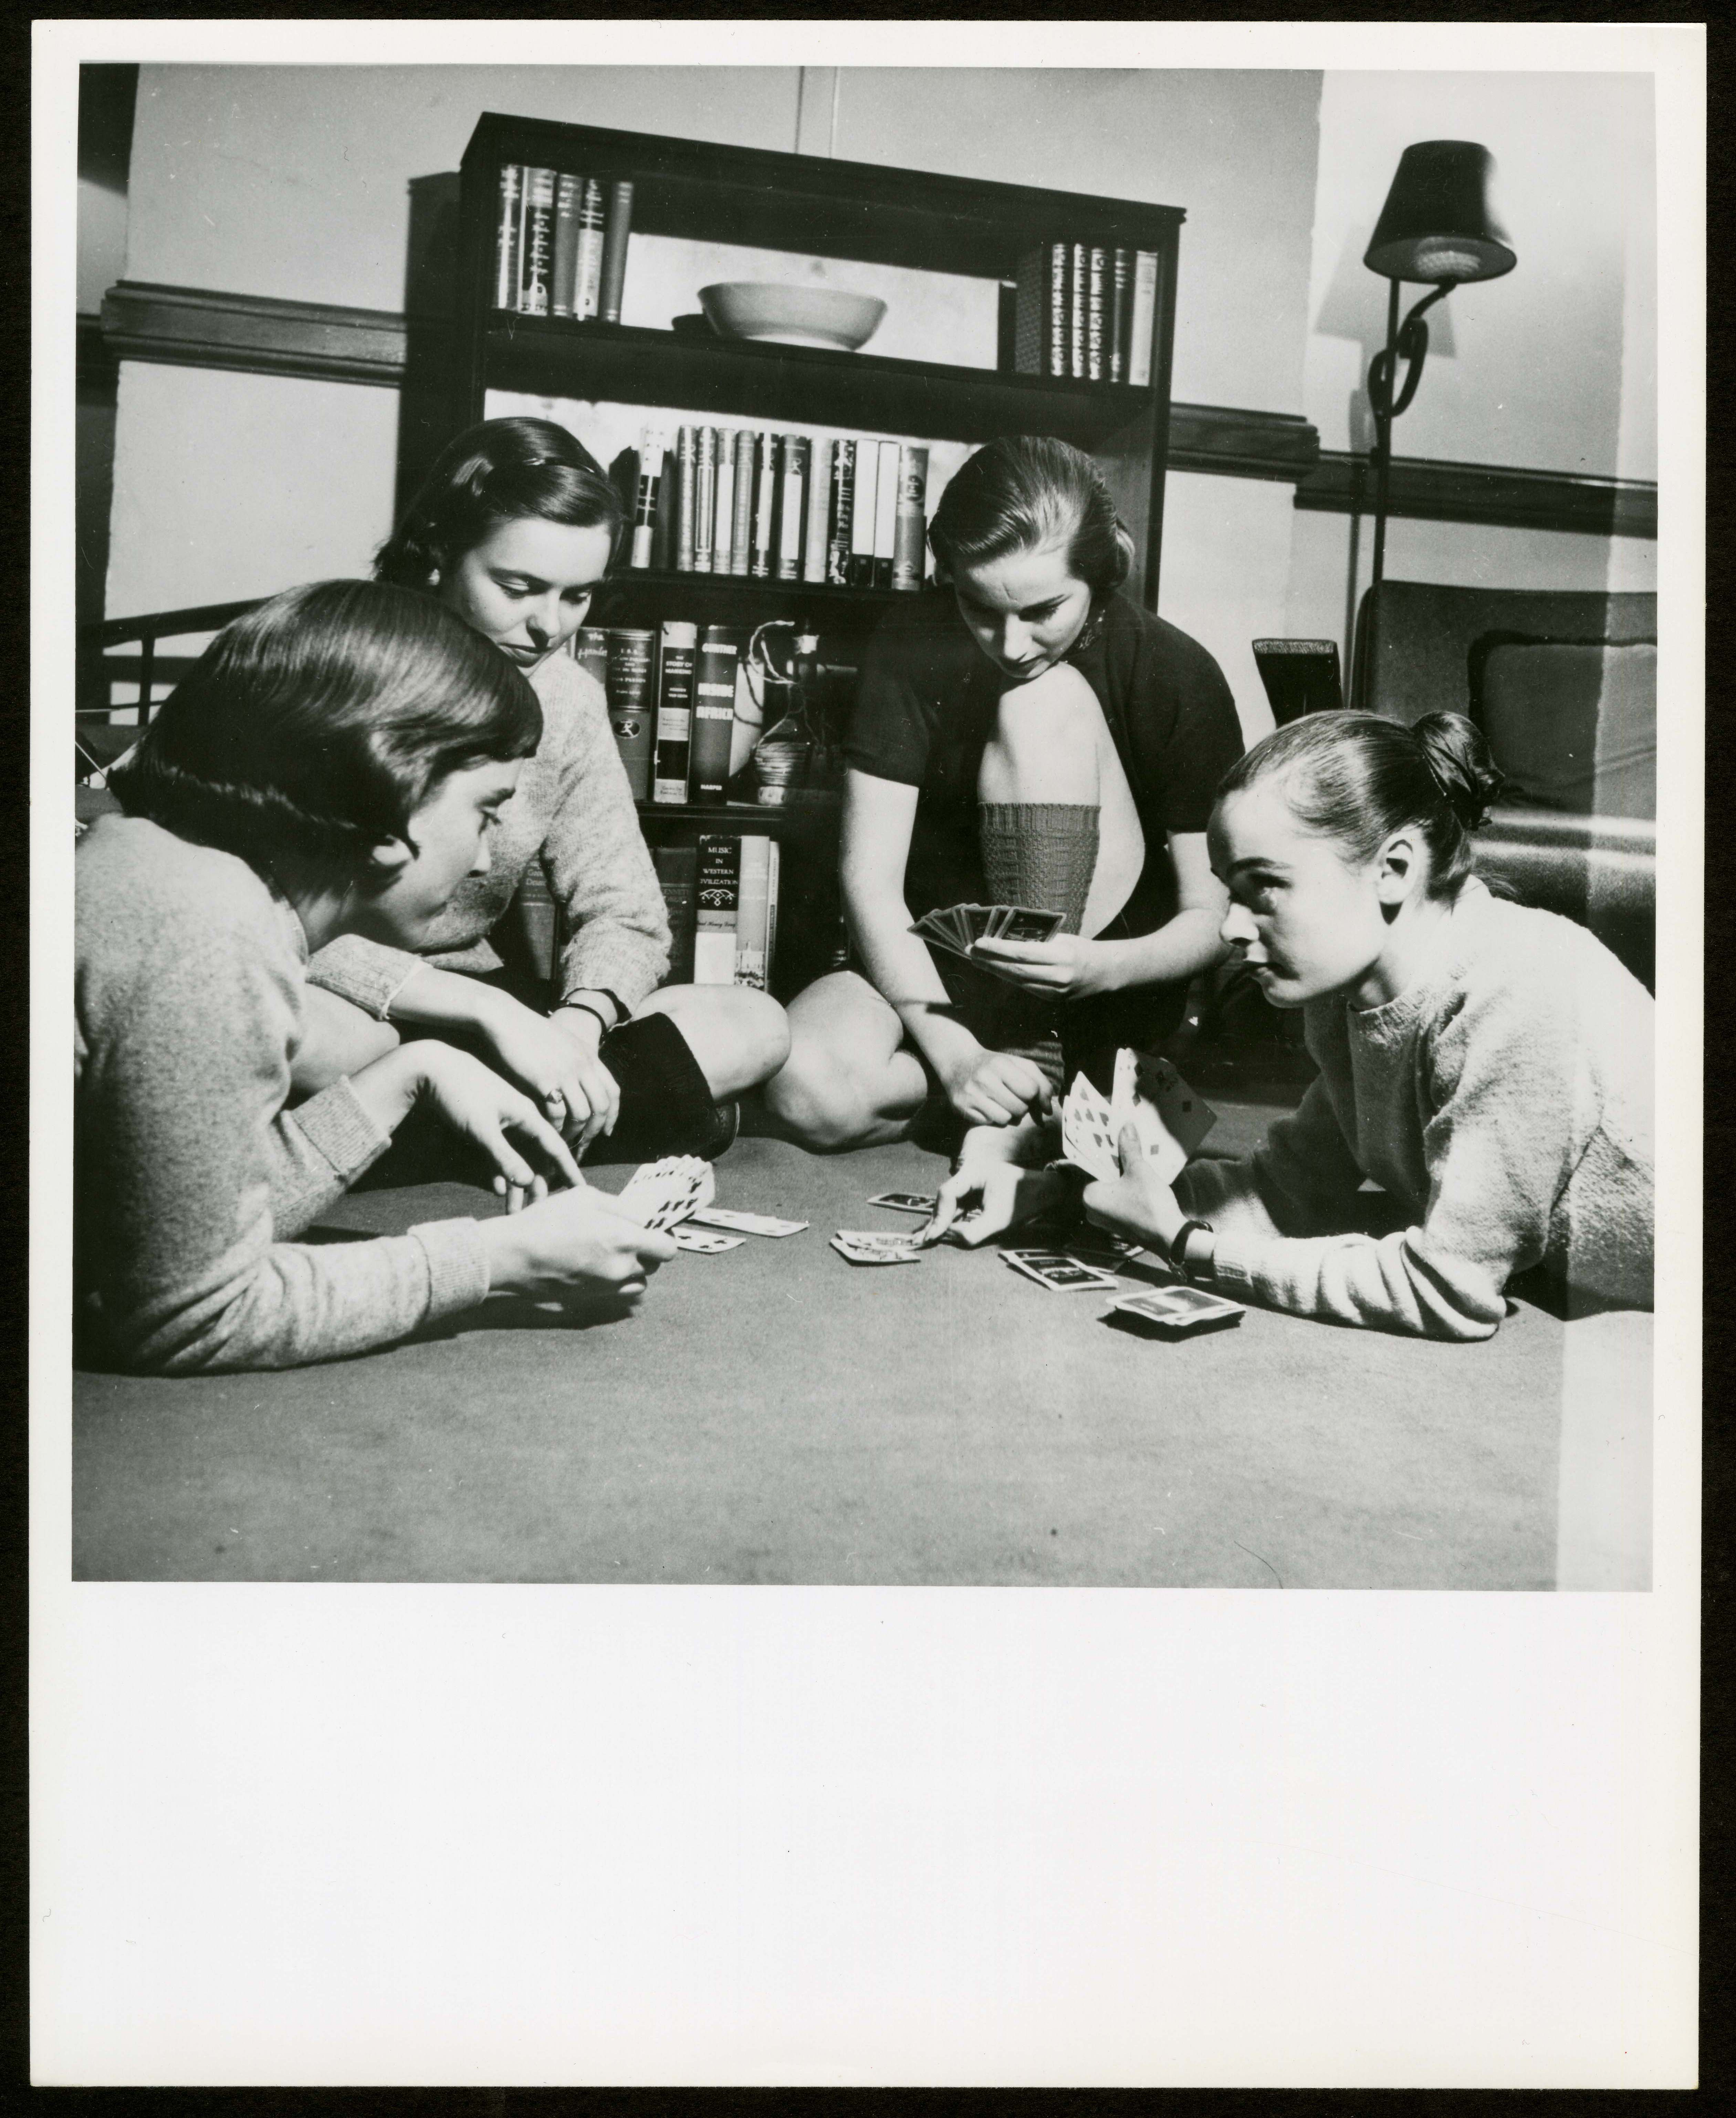 B & W image of four young female students playing cards on the floor.